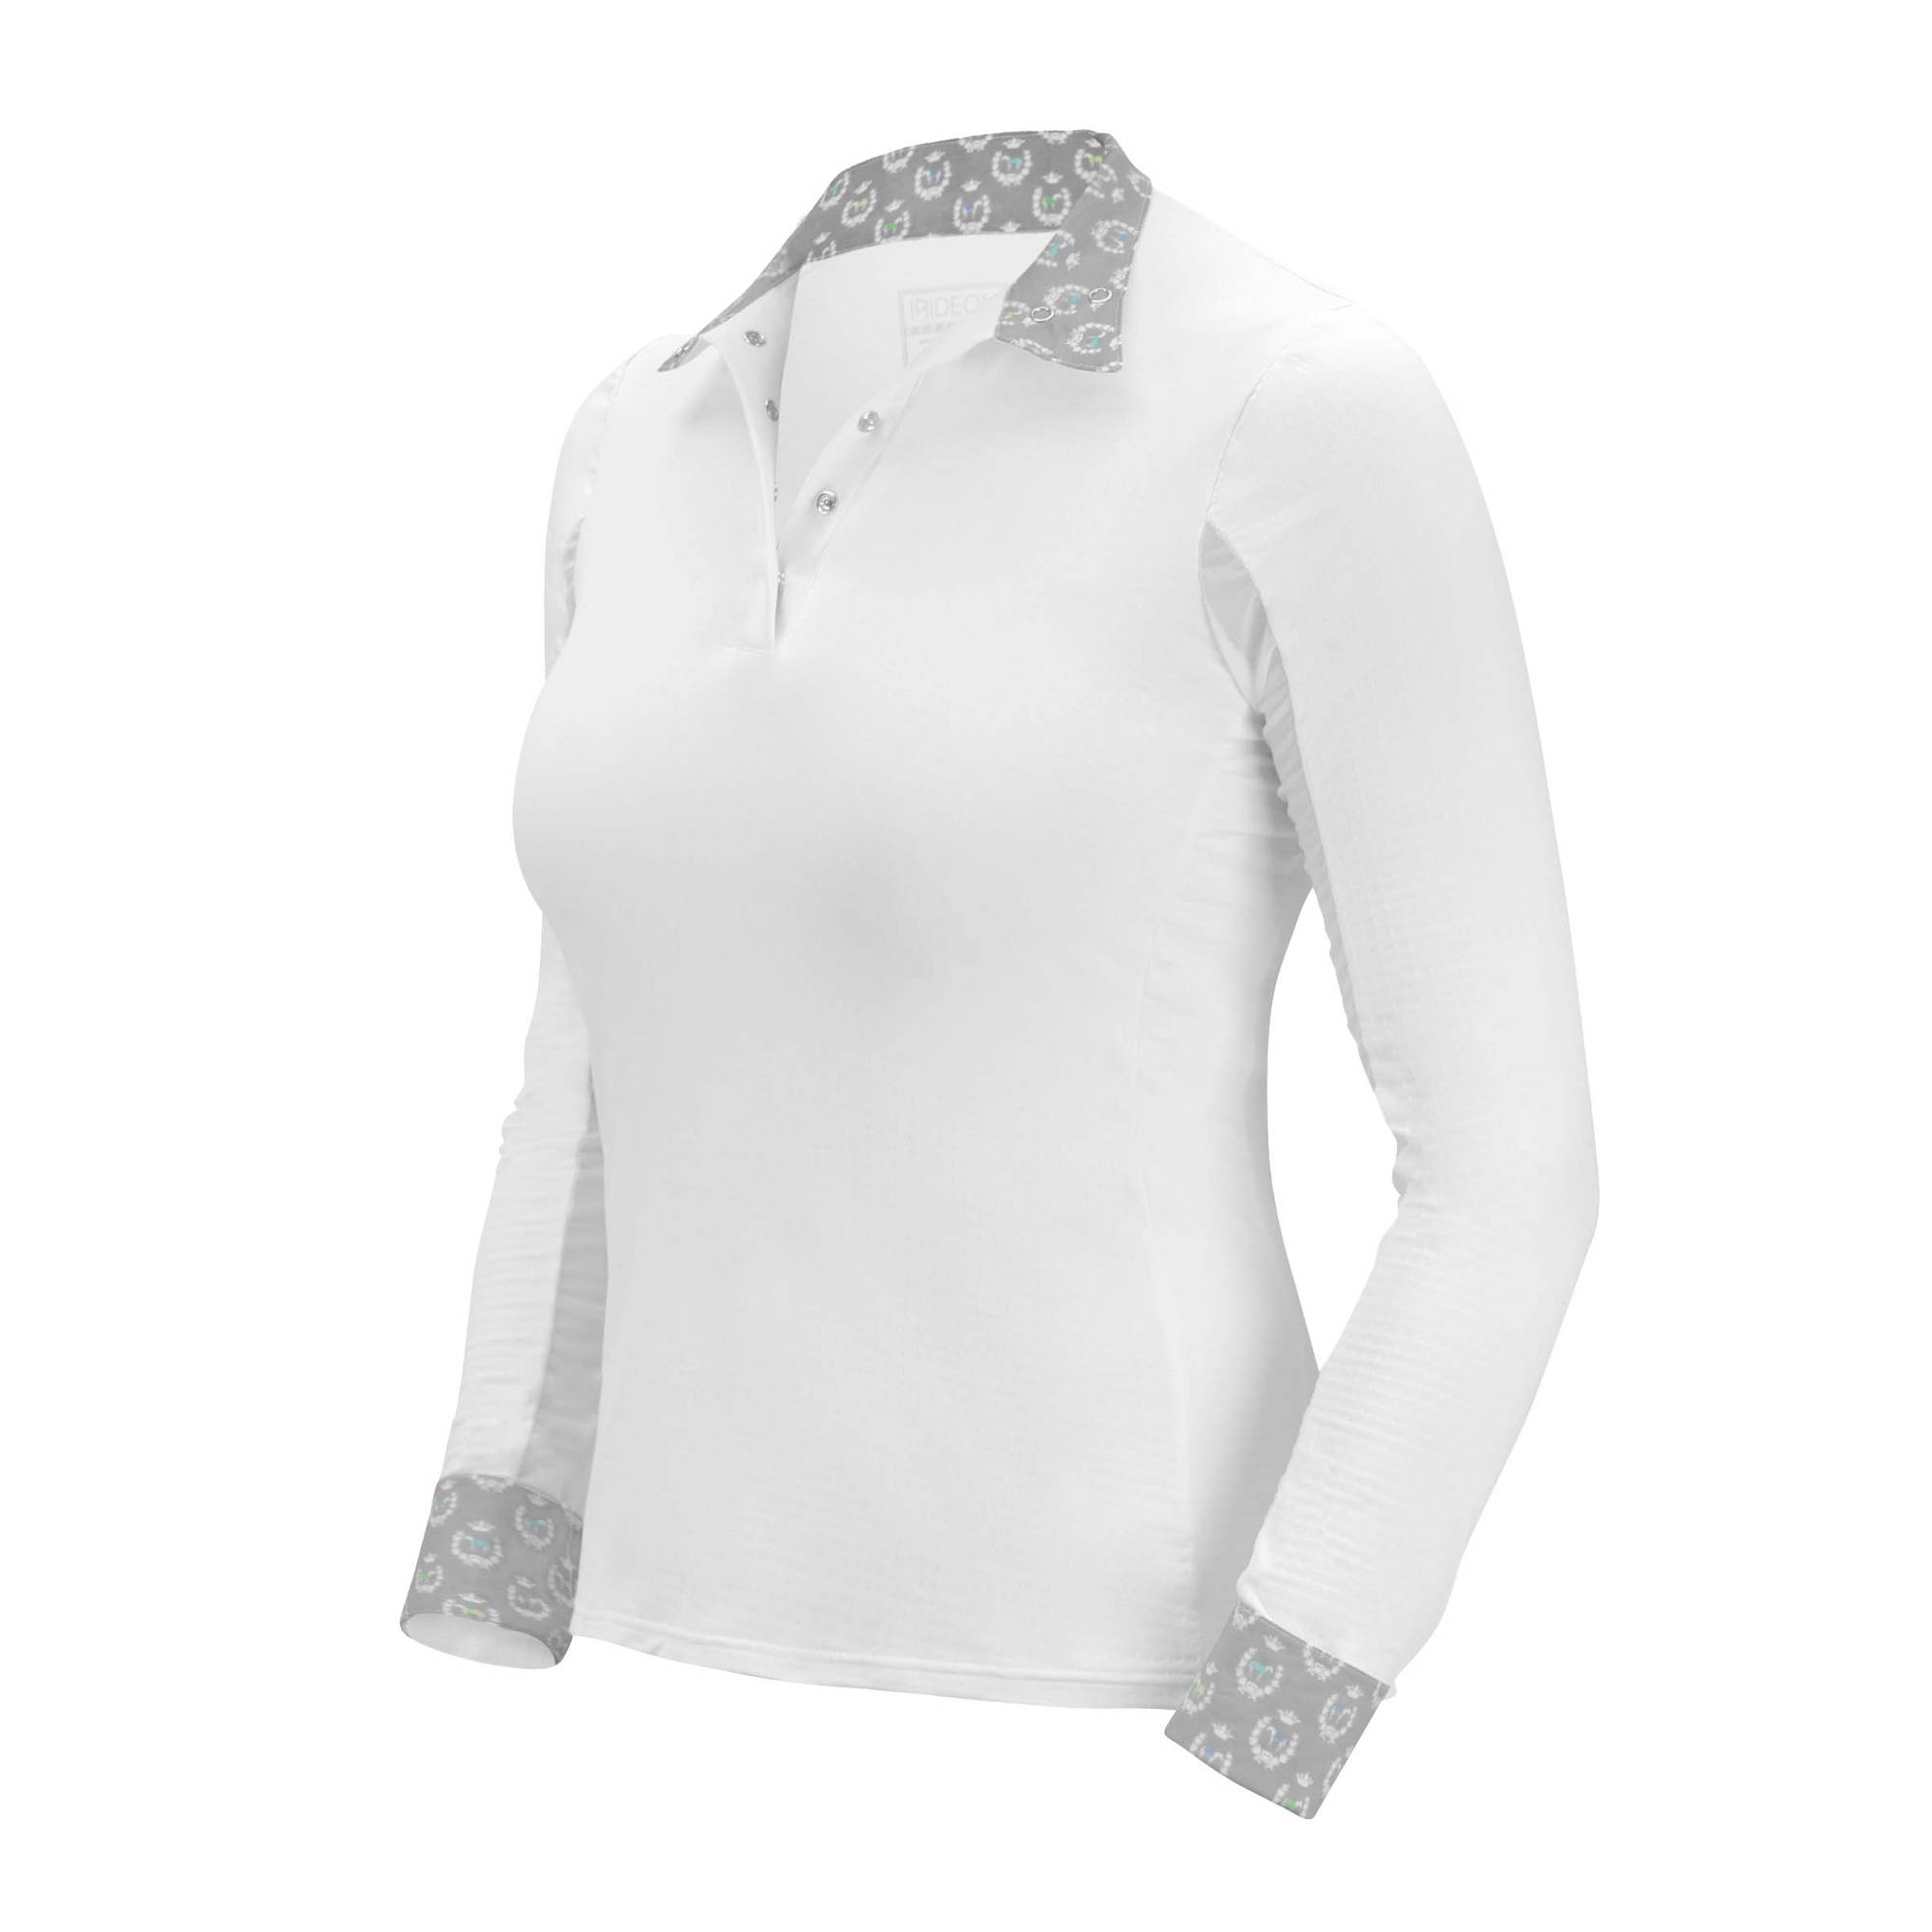 Irideon Ladies Cooldown Icefil Show Shirt